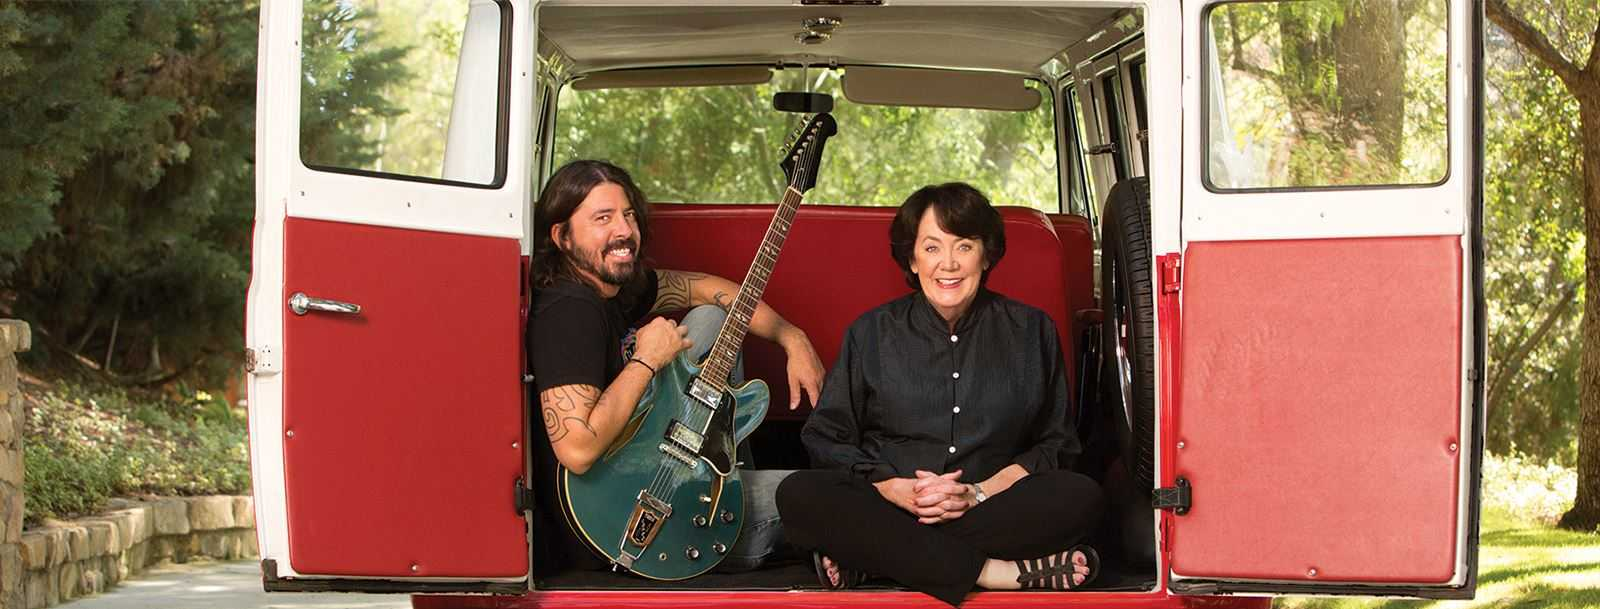 Dave Grohl's Mom Wrote A Book About Raising Rock Stars | Grohl's mom